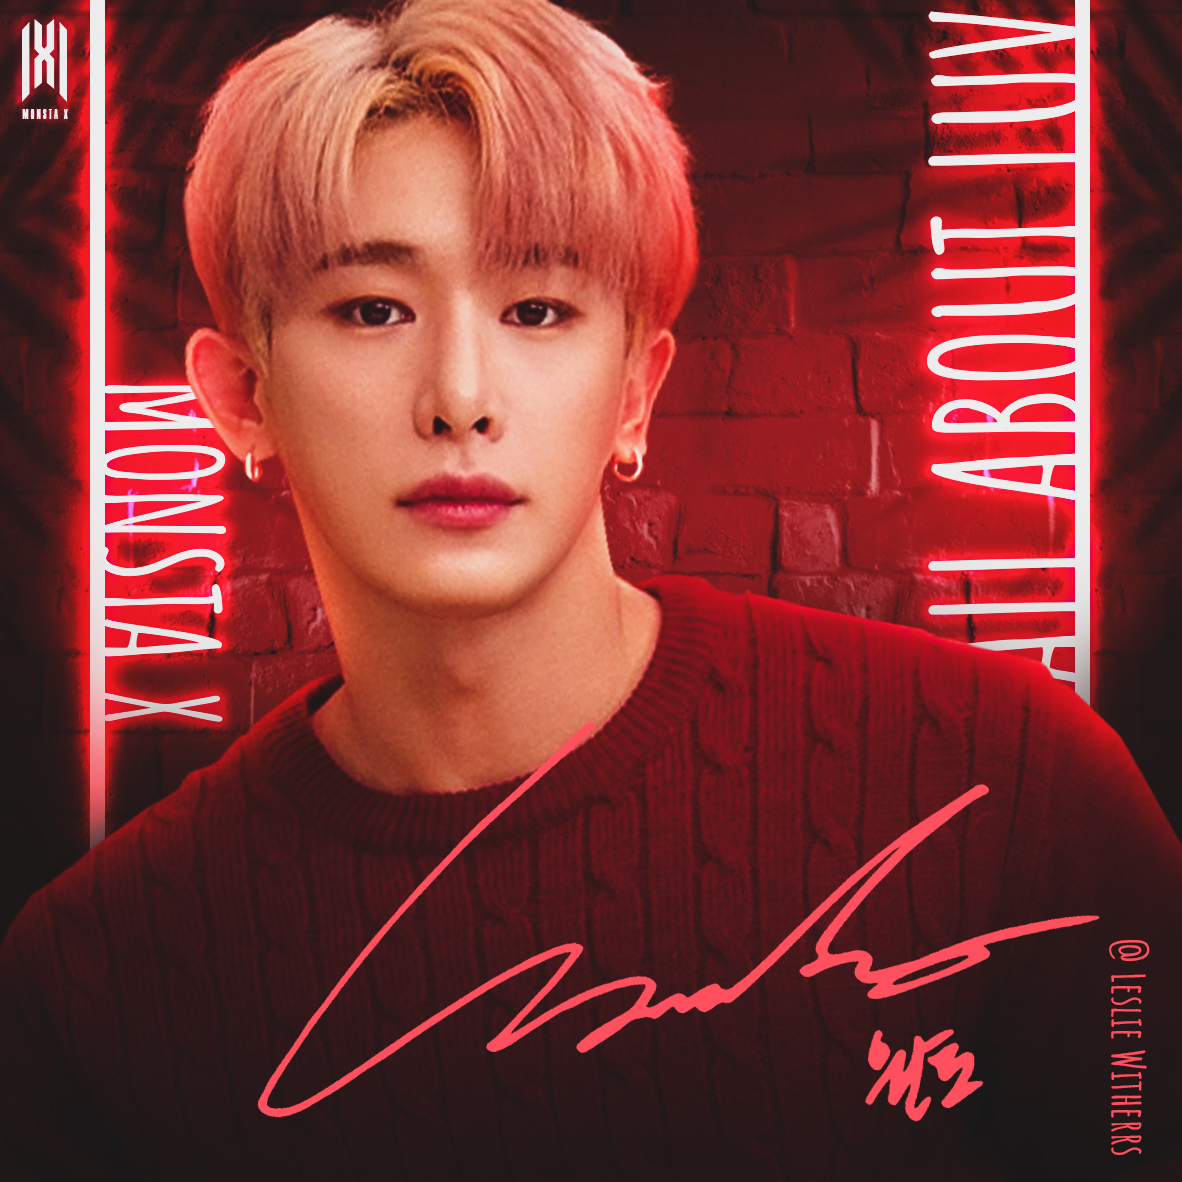 Monbebee~ All album covers will be finished soon 1/7 I will continue~ What do you think?   #MONSTA_X #AllAboutLuvForWonho #스타쉽_몬엑_잘_좀_케어해  @OfficialMonstaX   @STARSHIPent can i work for you? ㅋㅋ<br>http://pic.twitter.com/L1eaaauR9h